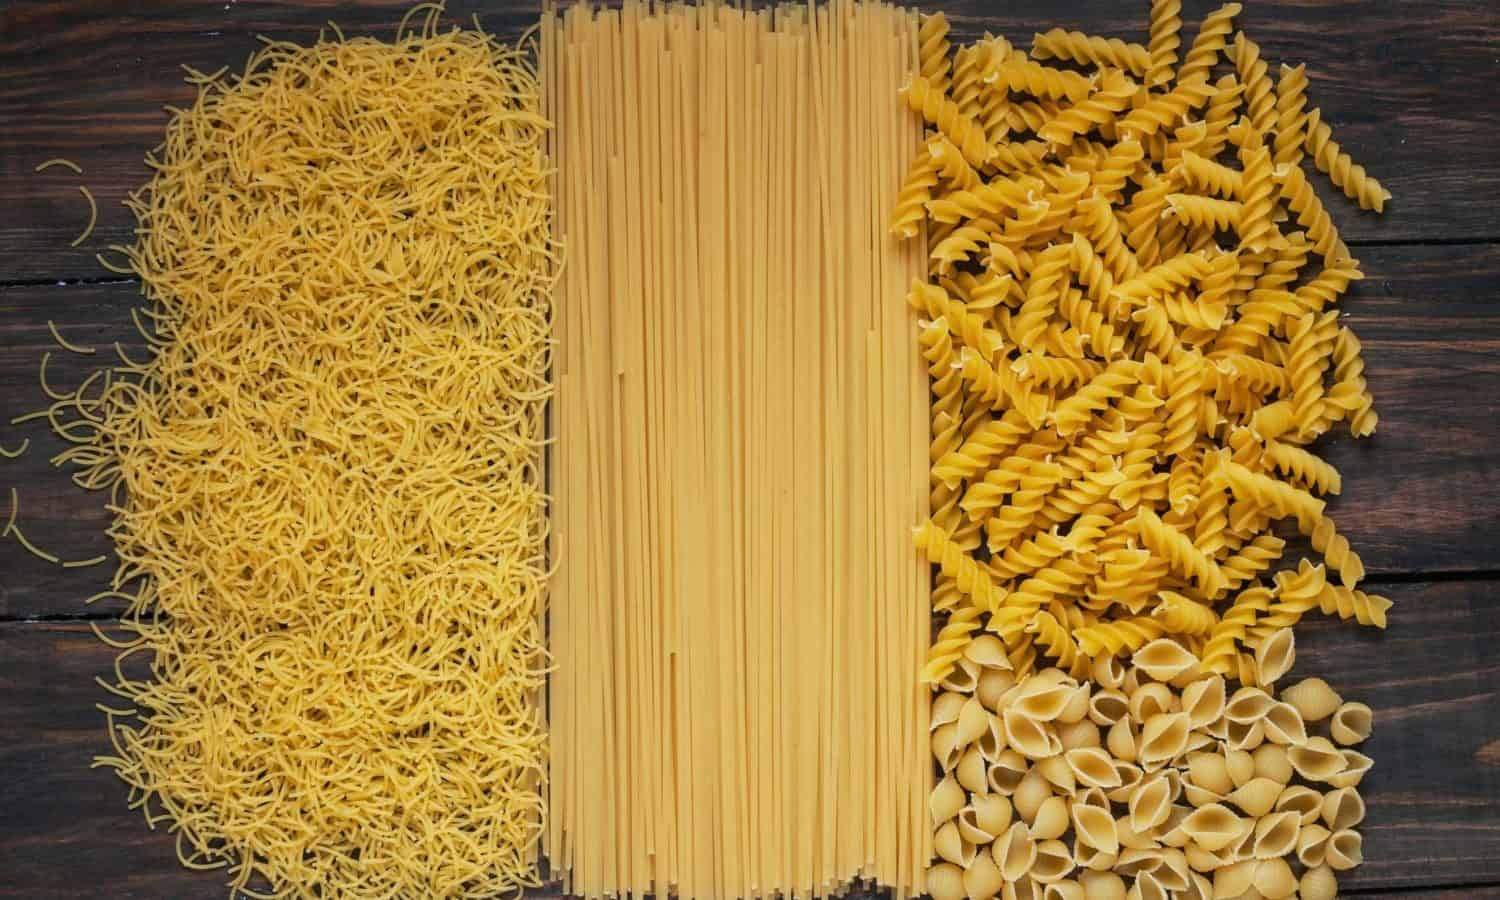 Global hunger levels rose in 2017 for the first time in a decade. In the global fight against food waste, pasta can be an ally at home.